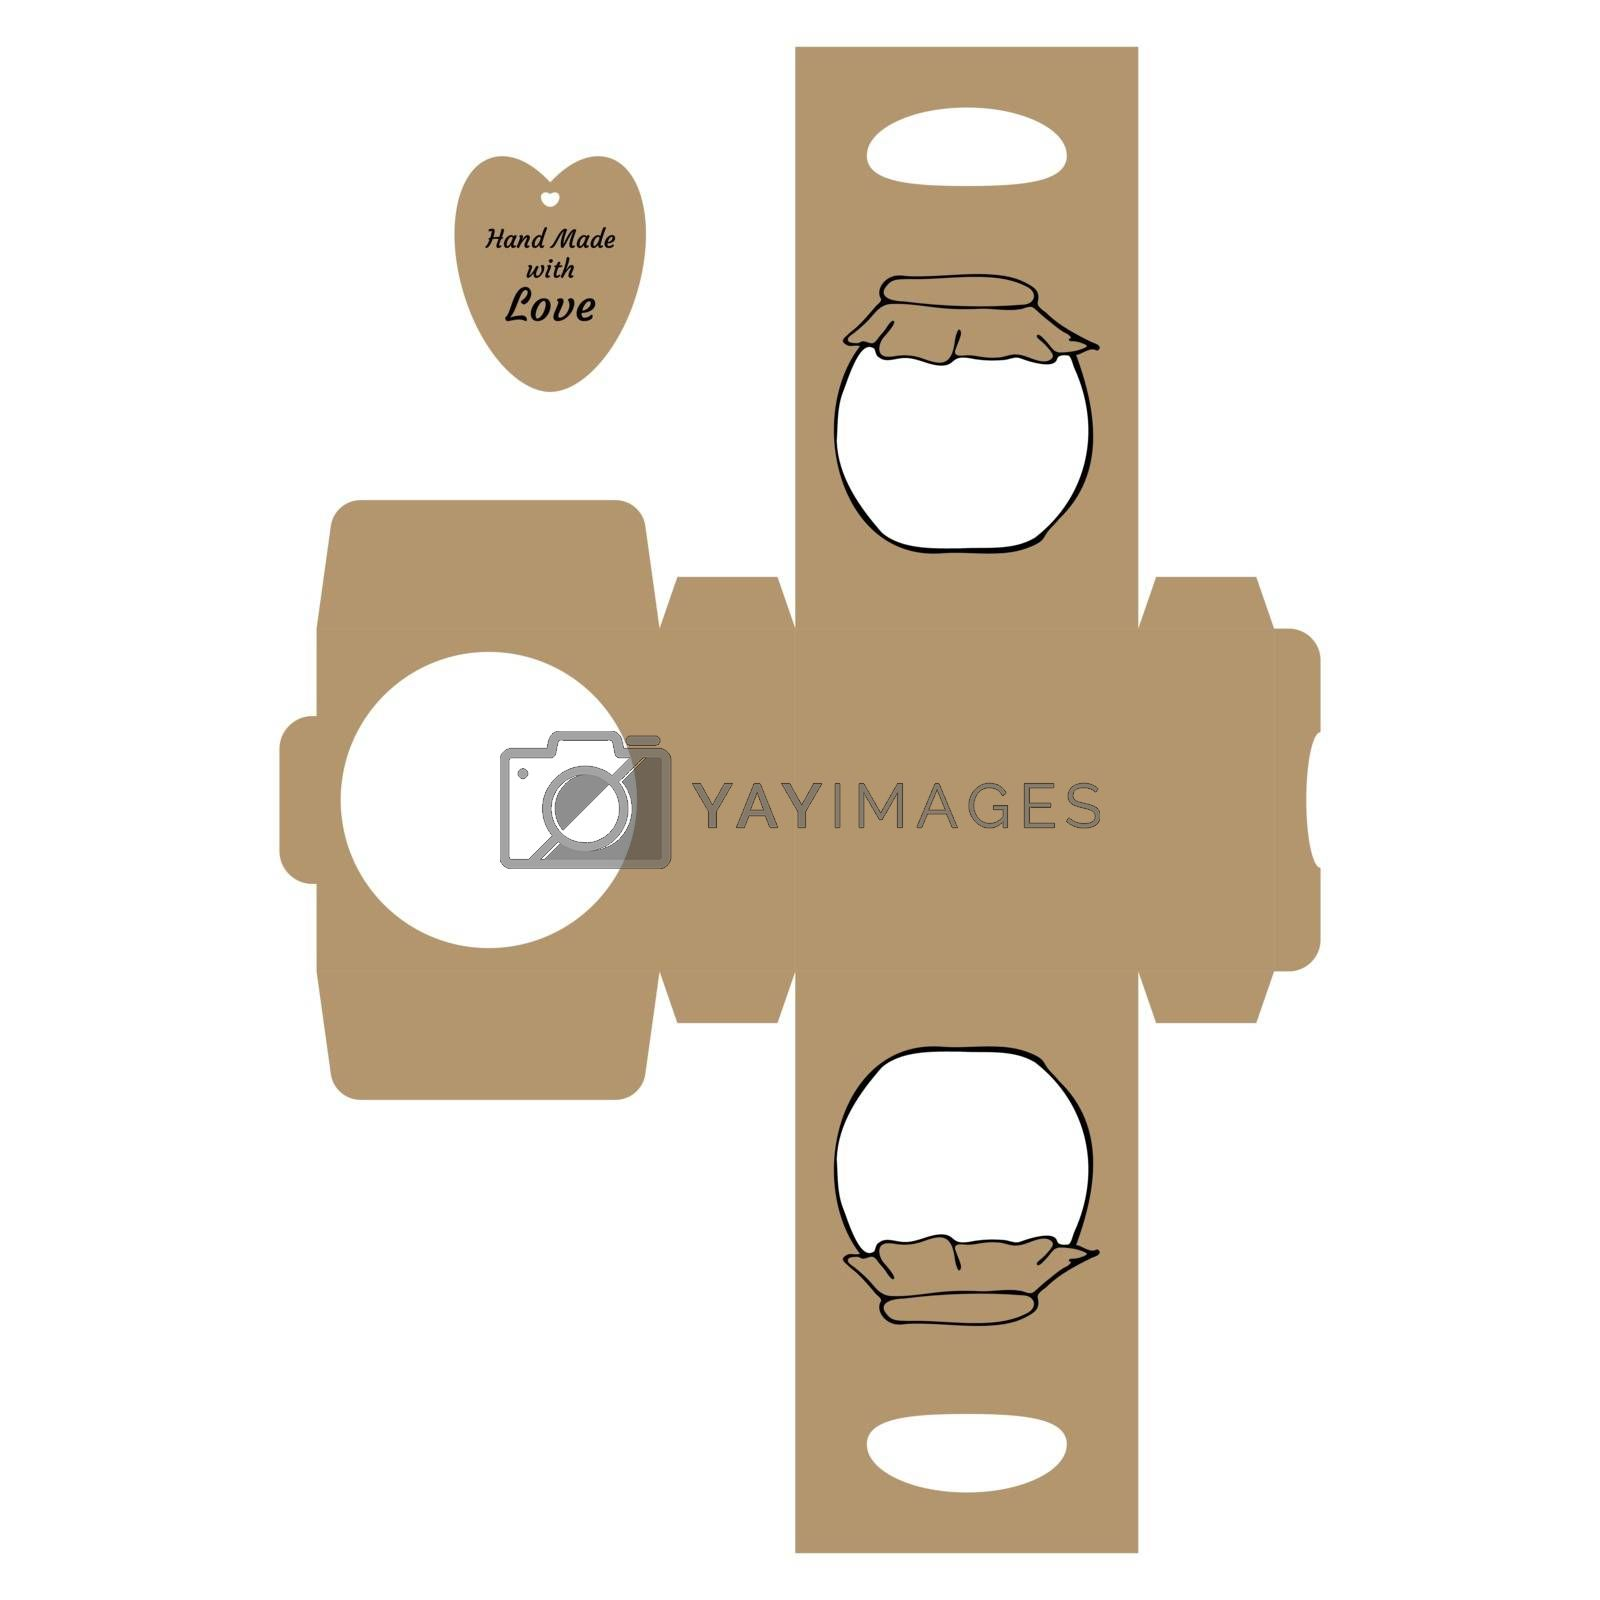 """Simple Packaging Box Die Cut Cube Template with jar and tag with text """"Thank You Hand Made with Love"""" on white background - Vector Draw Graphic Design."""